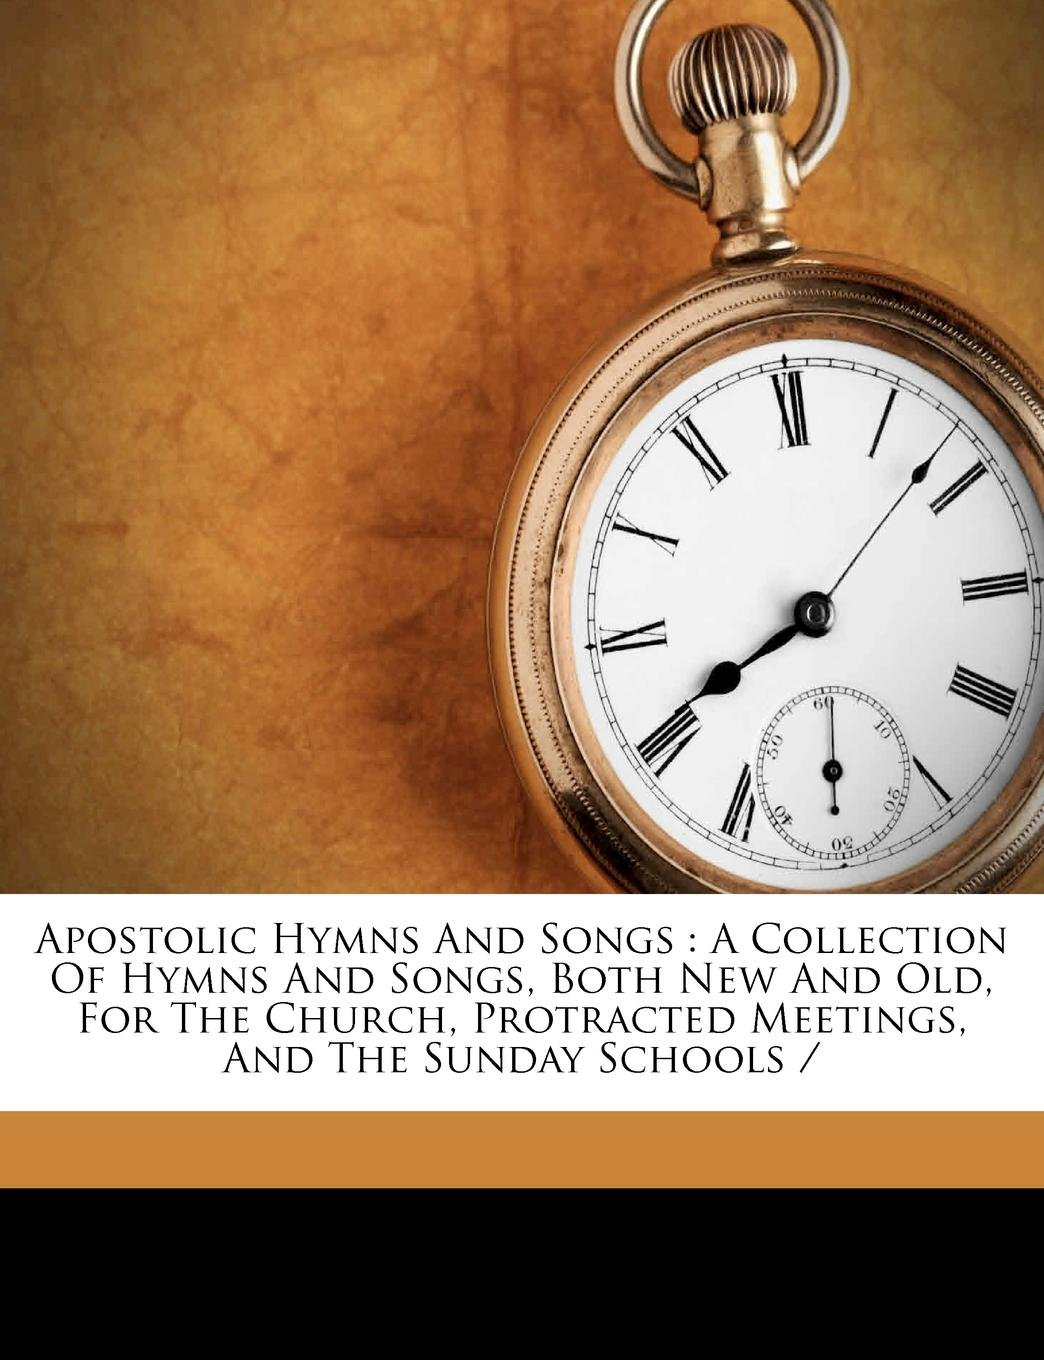 Apostolic Hymns And Songs: A Collection Of Hymns And Songs, Both New